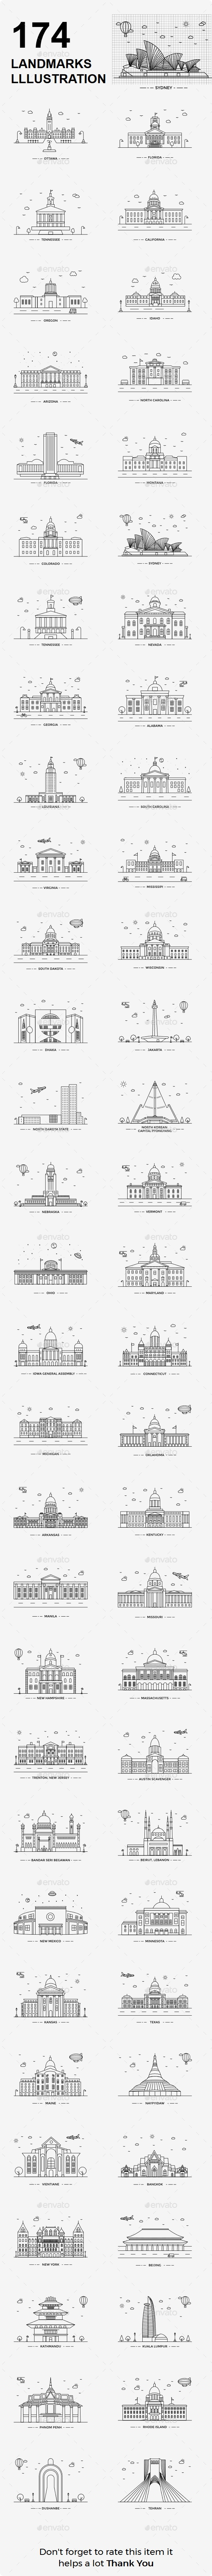 Capital Landmarks Illustration - Icons